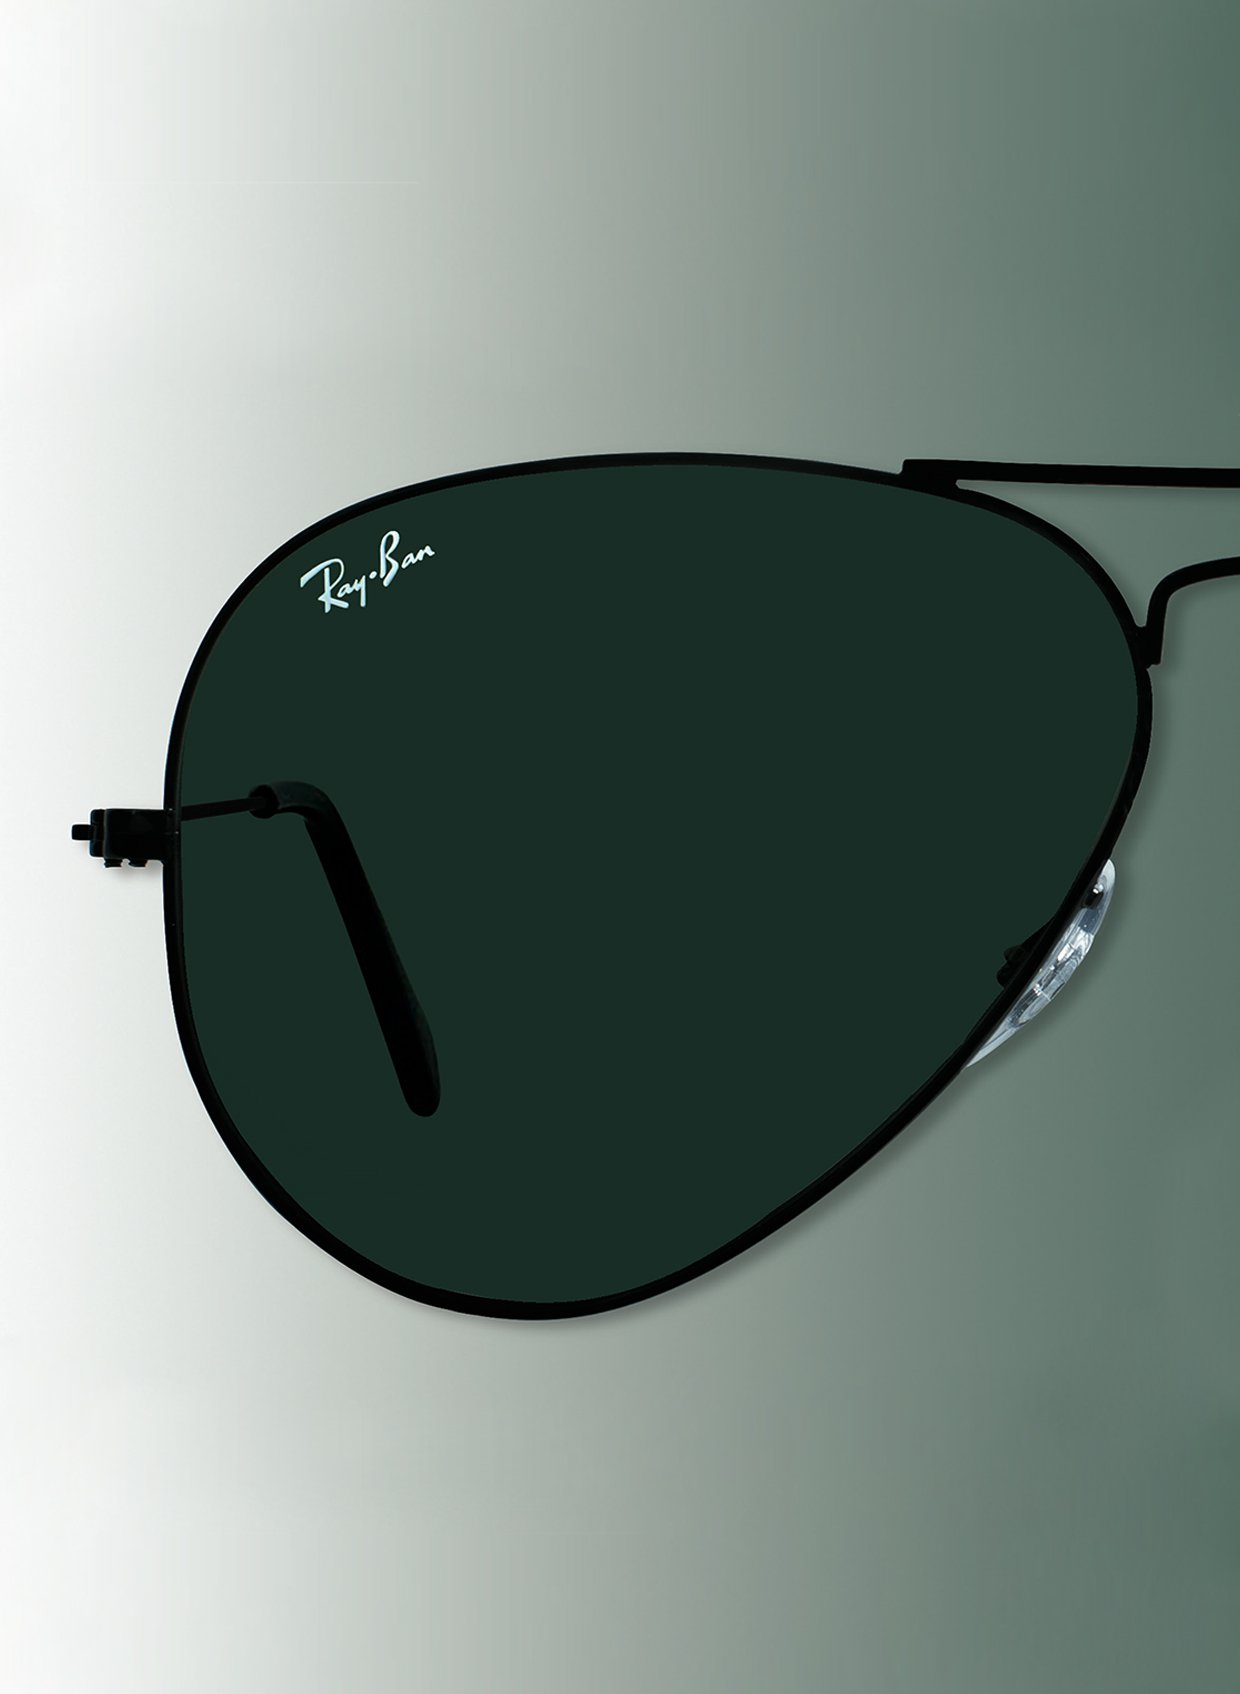 Optic 2000 Ray Ban Marque Culte